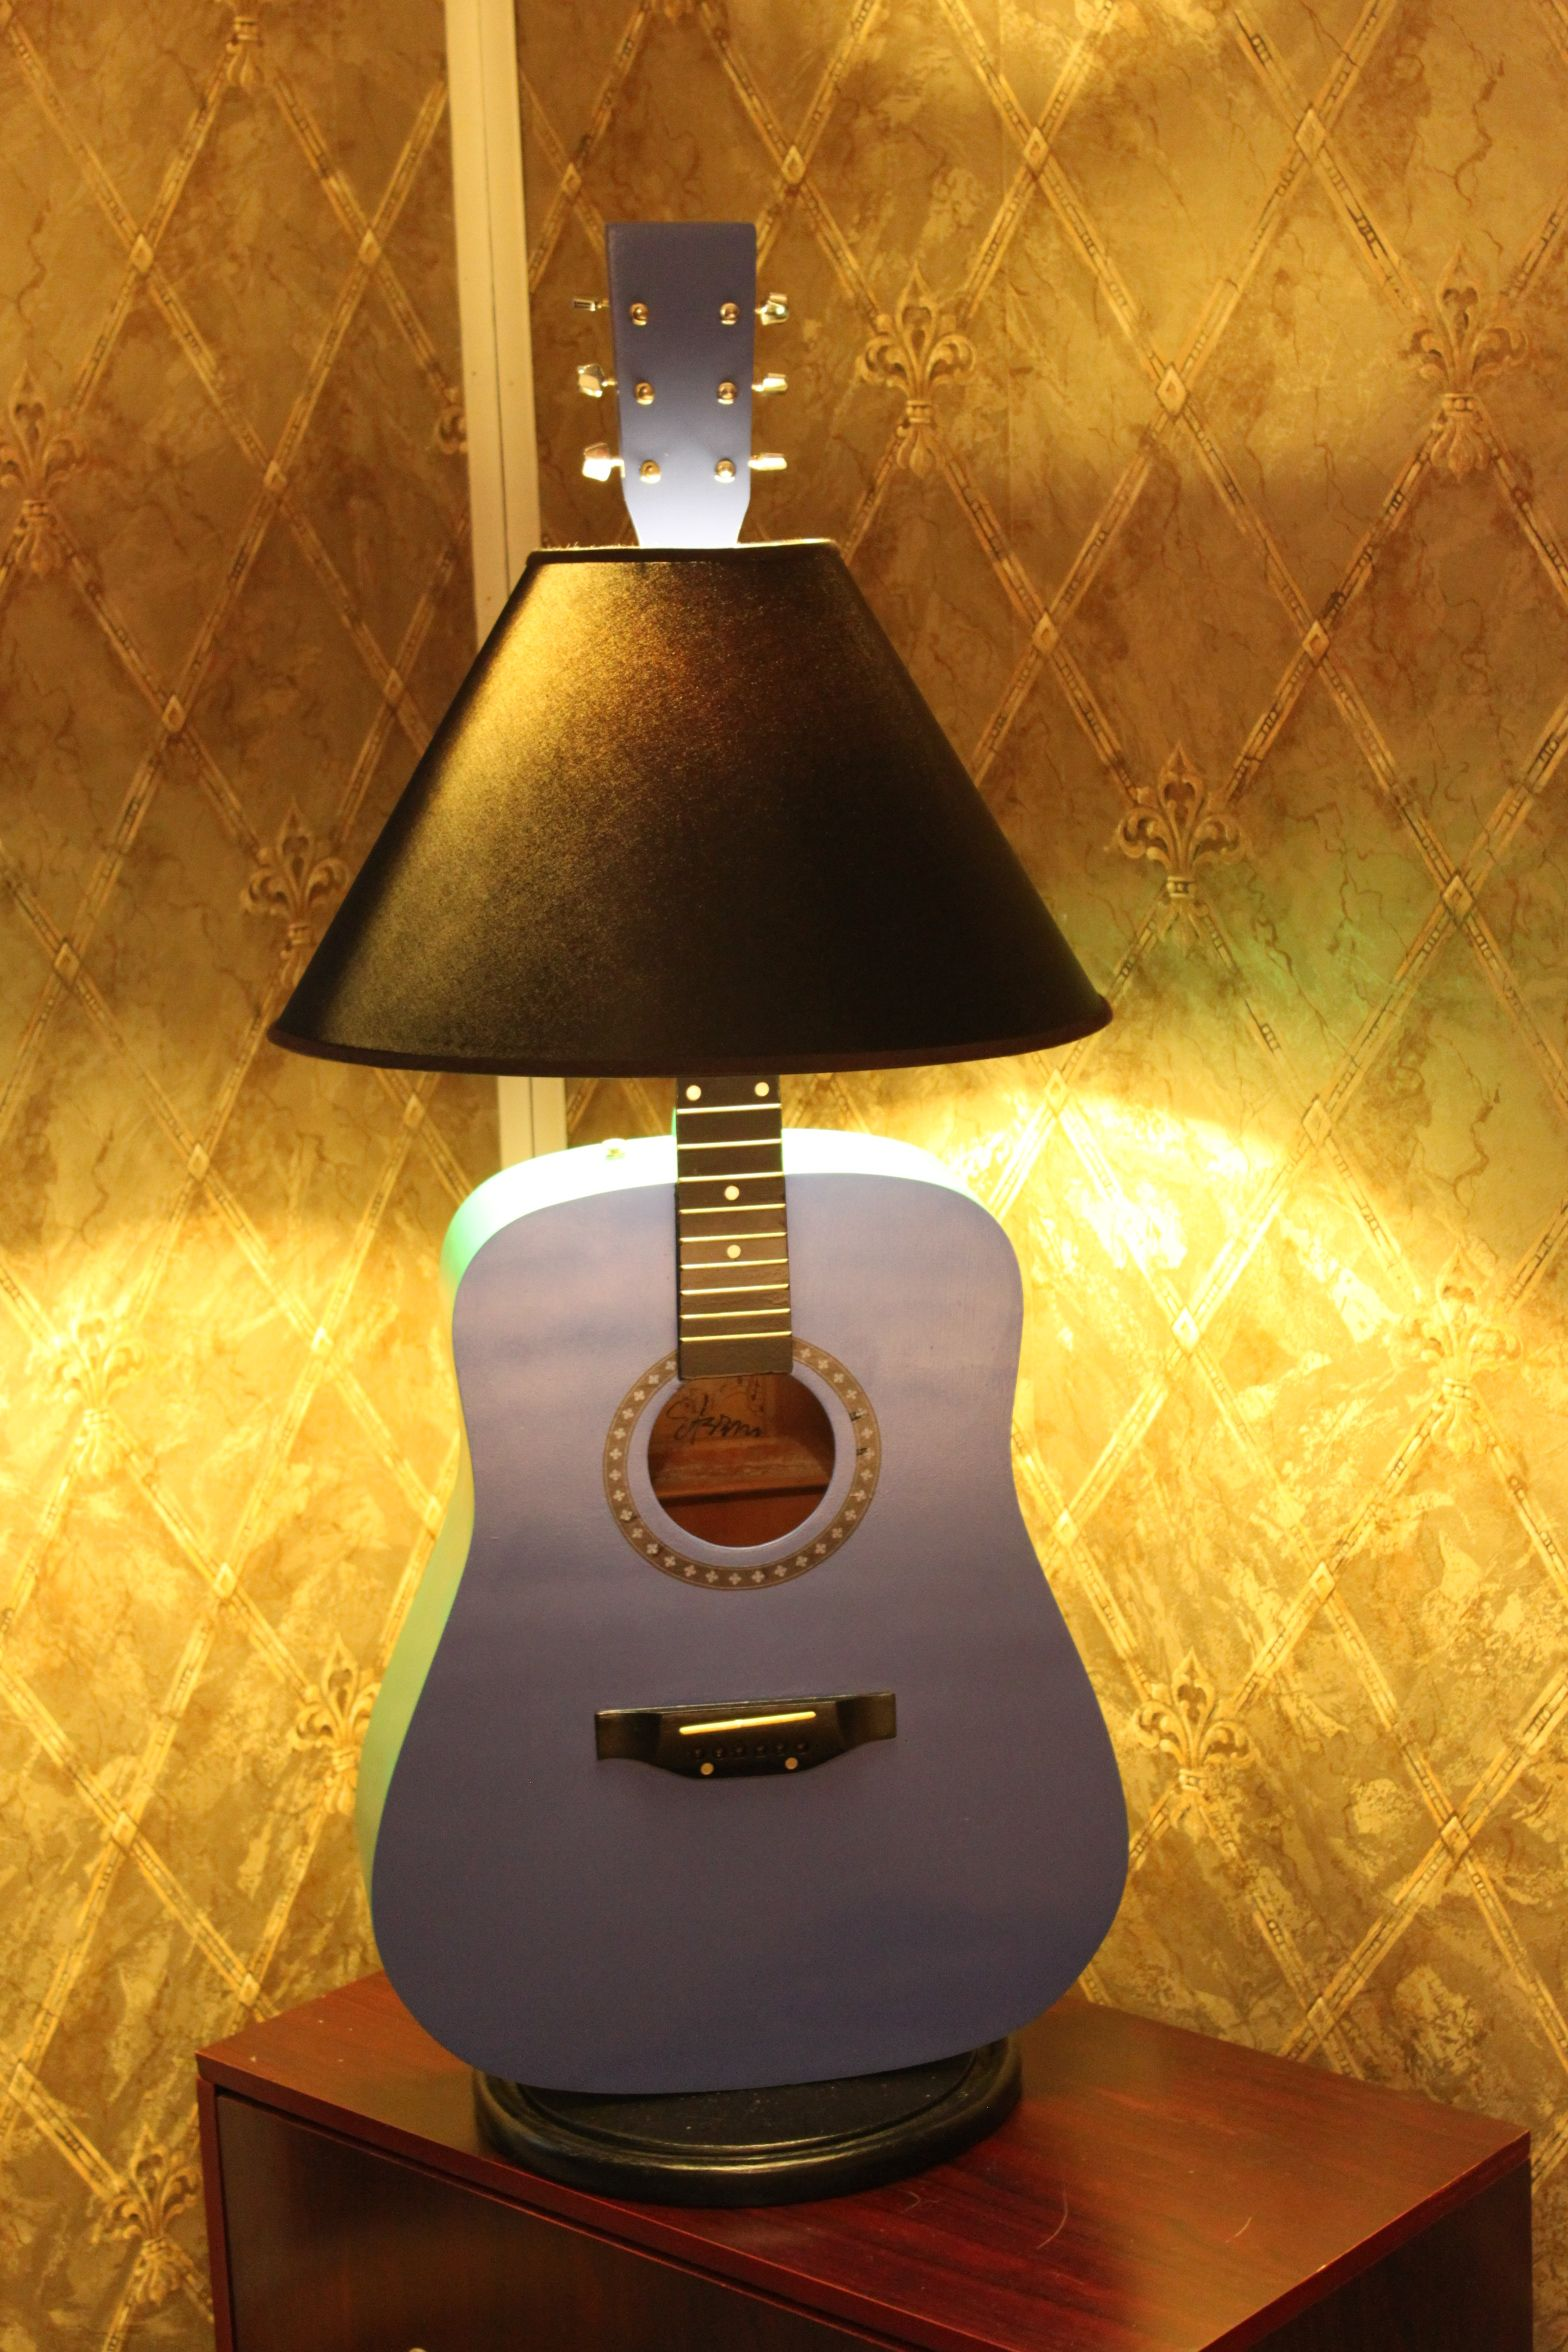 Light music lamp from cheap pawn shop acoustic guitar gabys light music lamp from cheap pawn shop acoustic guitar aloadofball Gallery